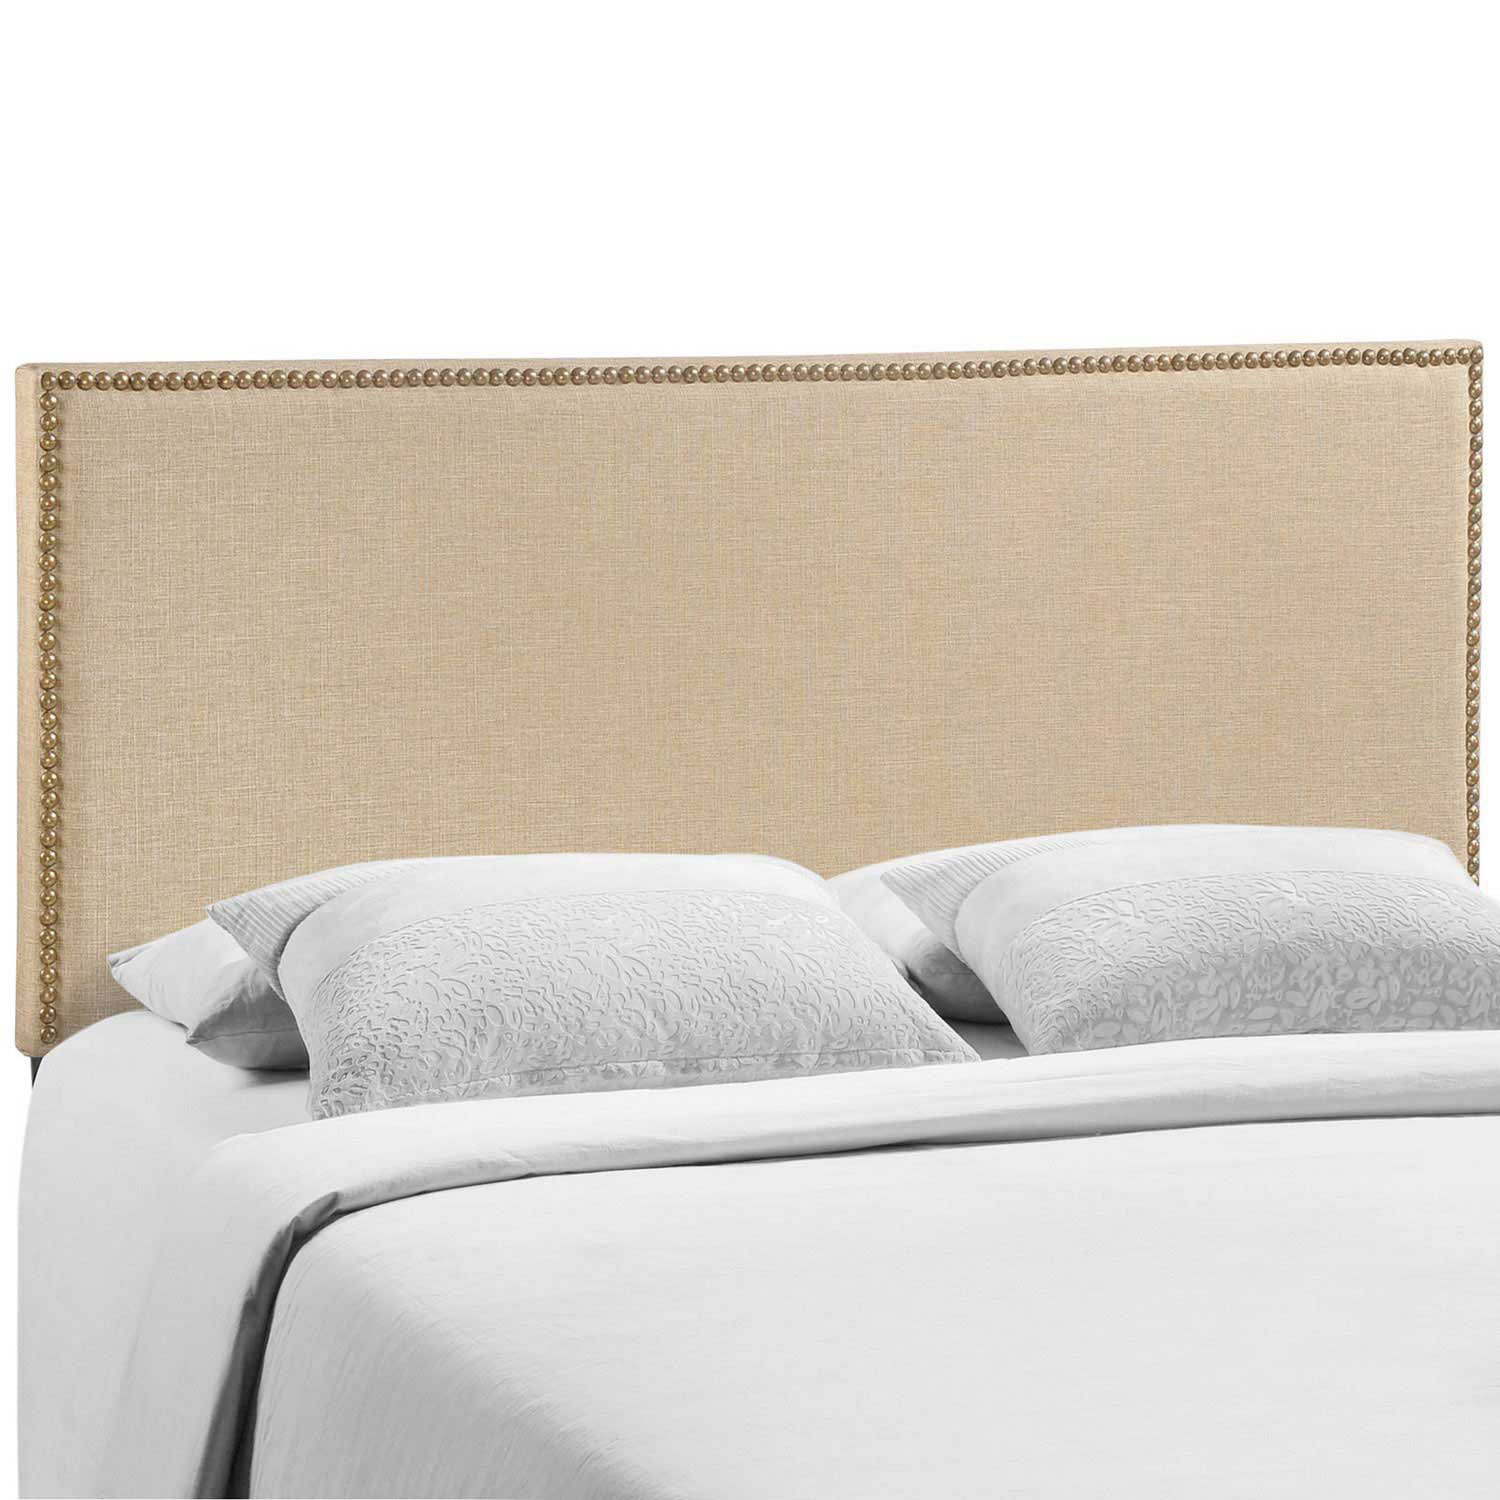 Modway Region Queen Nailhead Upholstered Headboard - Cafe